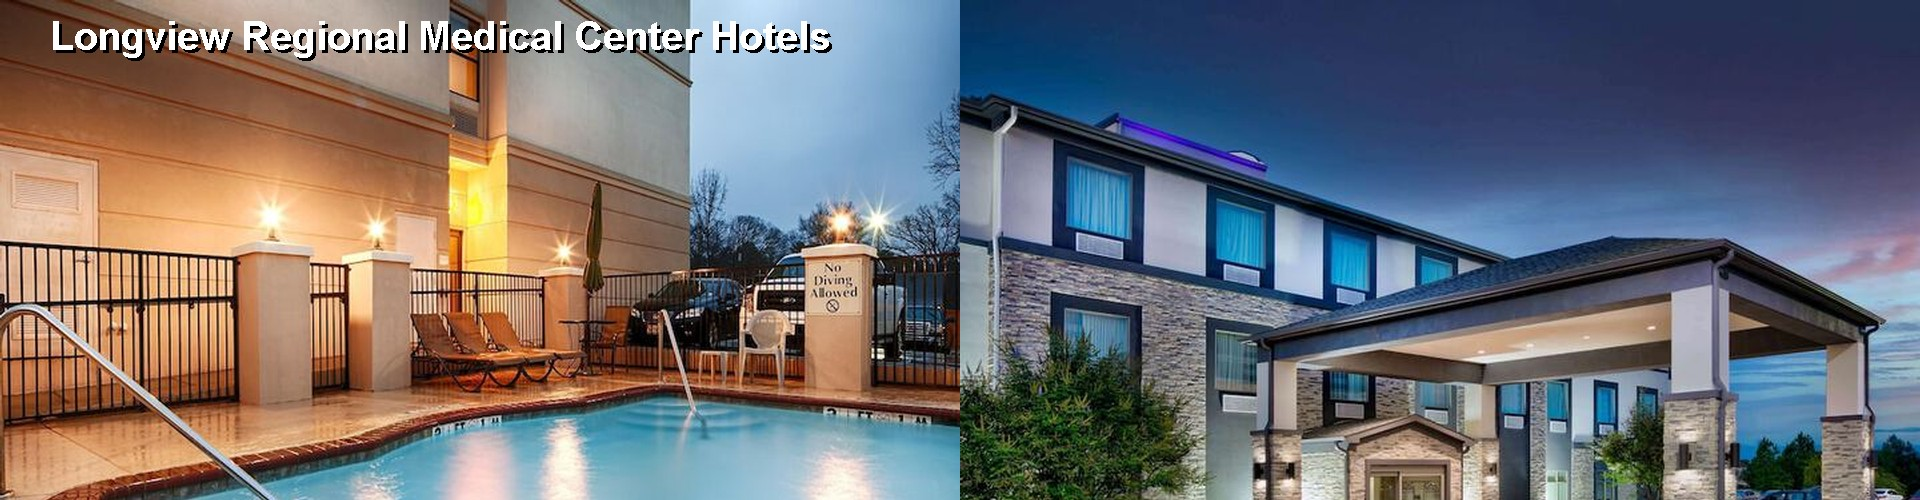 5 Best Hotels near Longview Regional Medical Center